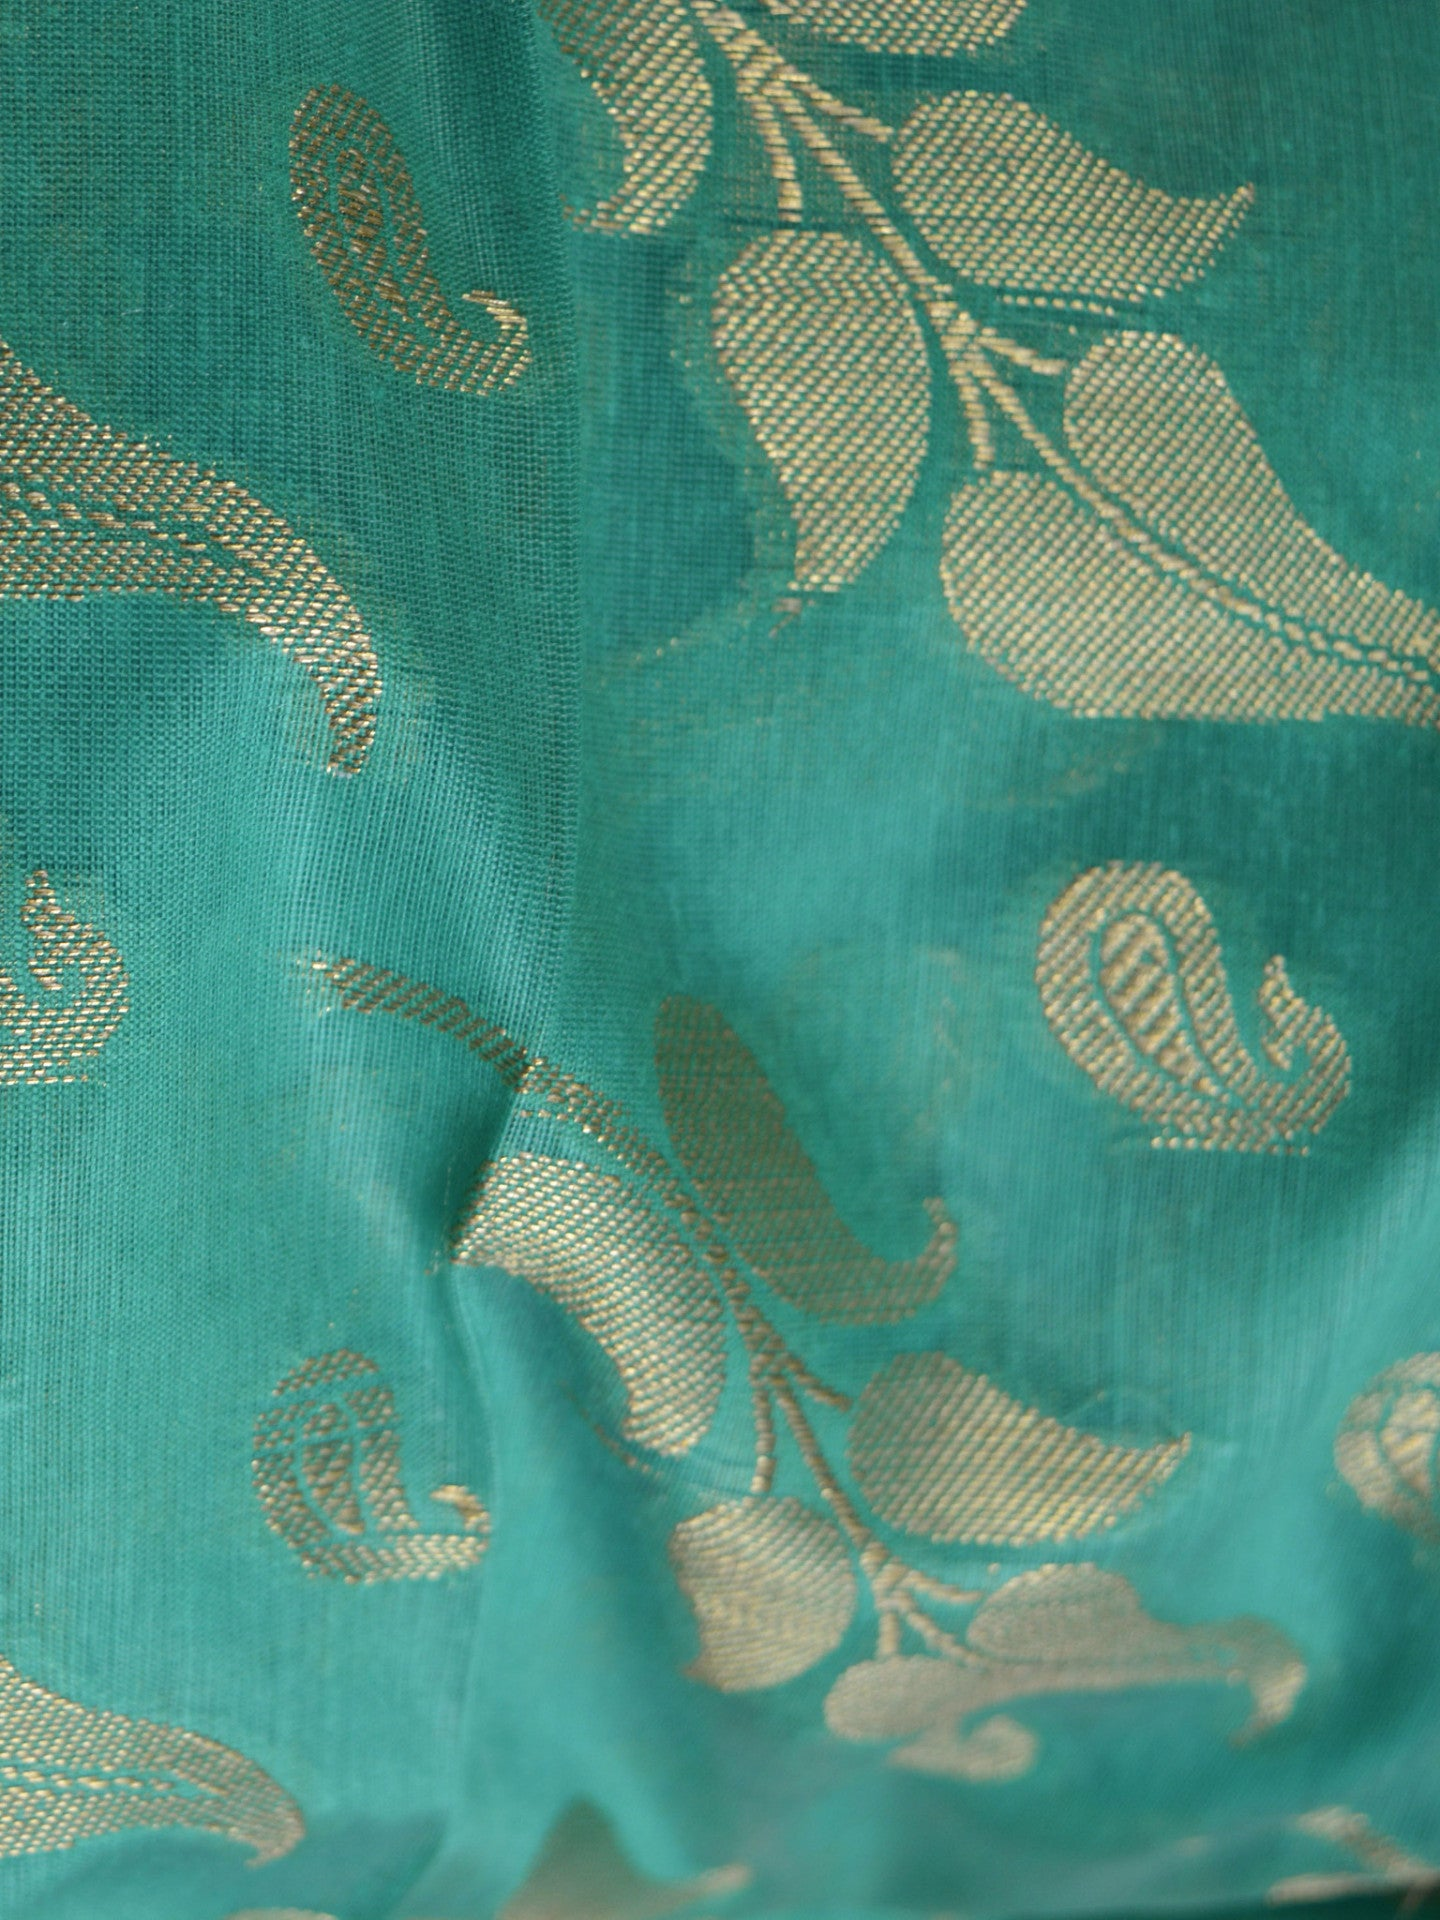 Banarasee/Banarasi Salwar Kameez Cotton Silk Gold Zari Leaf Buti Woven Fabric-Green